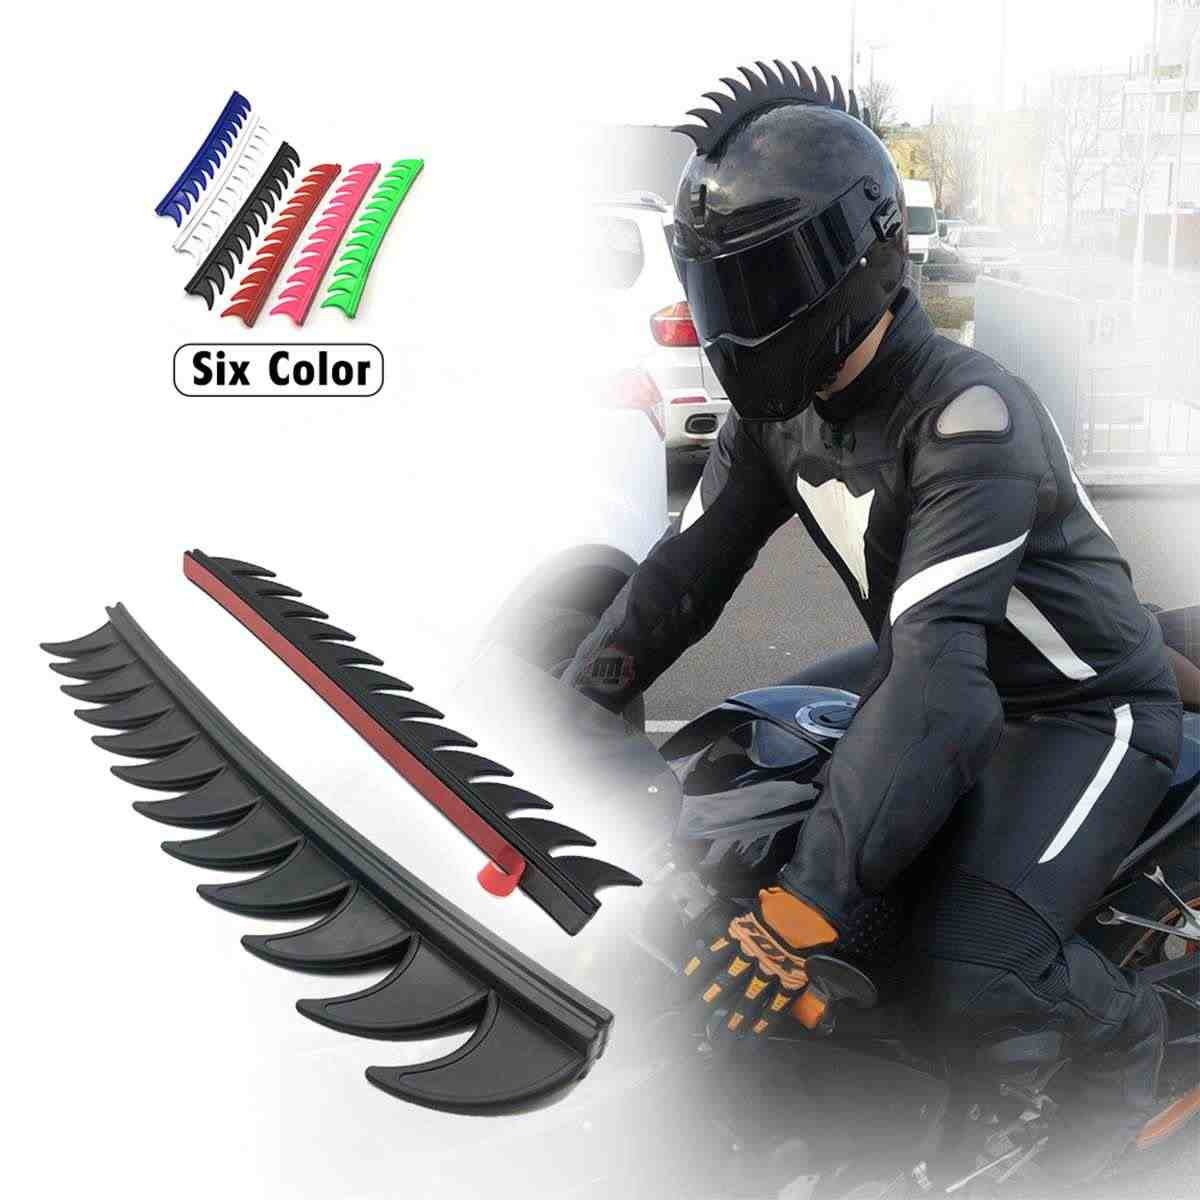 Reflective Decals For Rubber Helmet Mohawk Warhawk Spikes Saw Dirtbike Motorcycle Bike